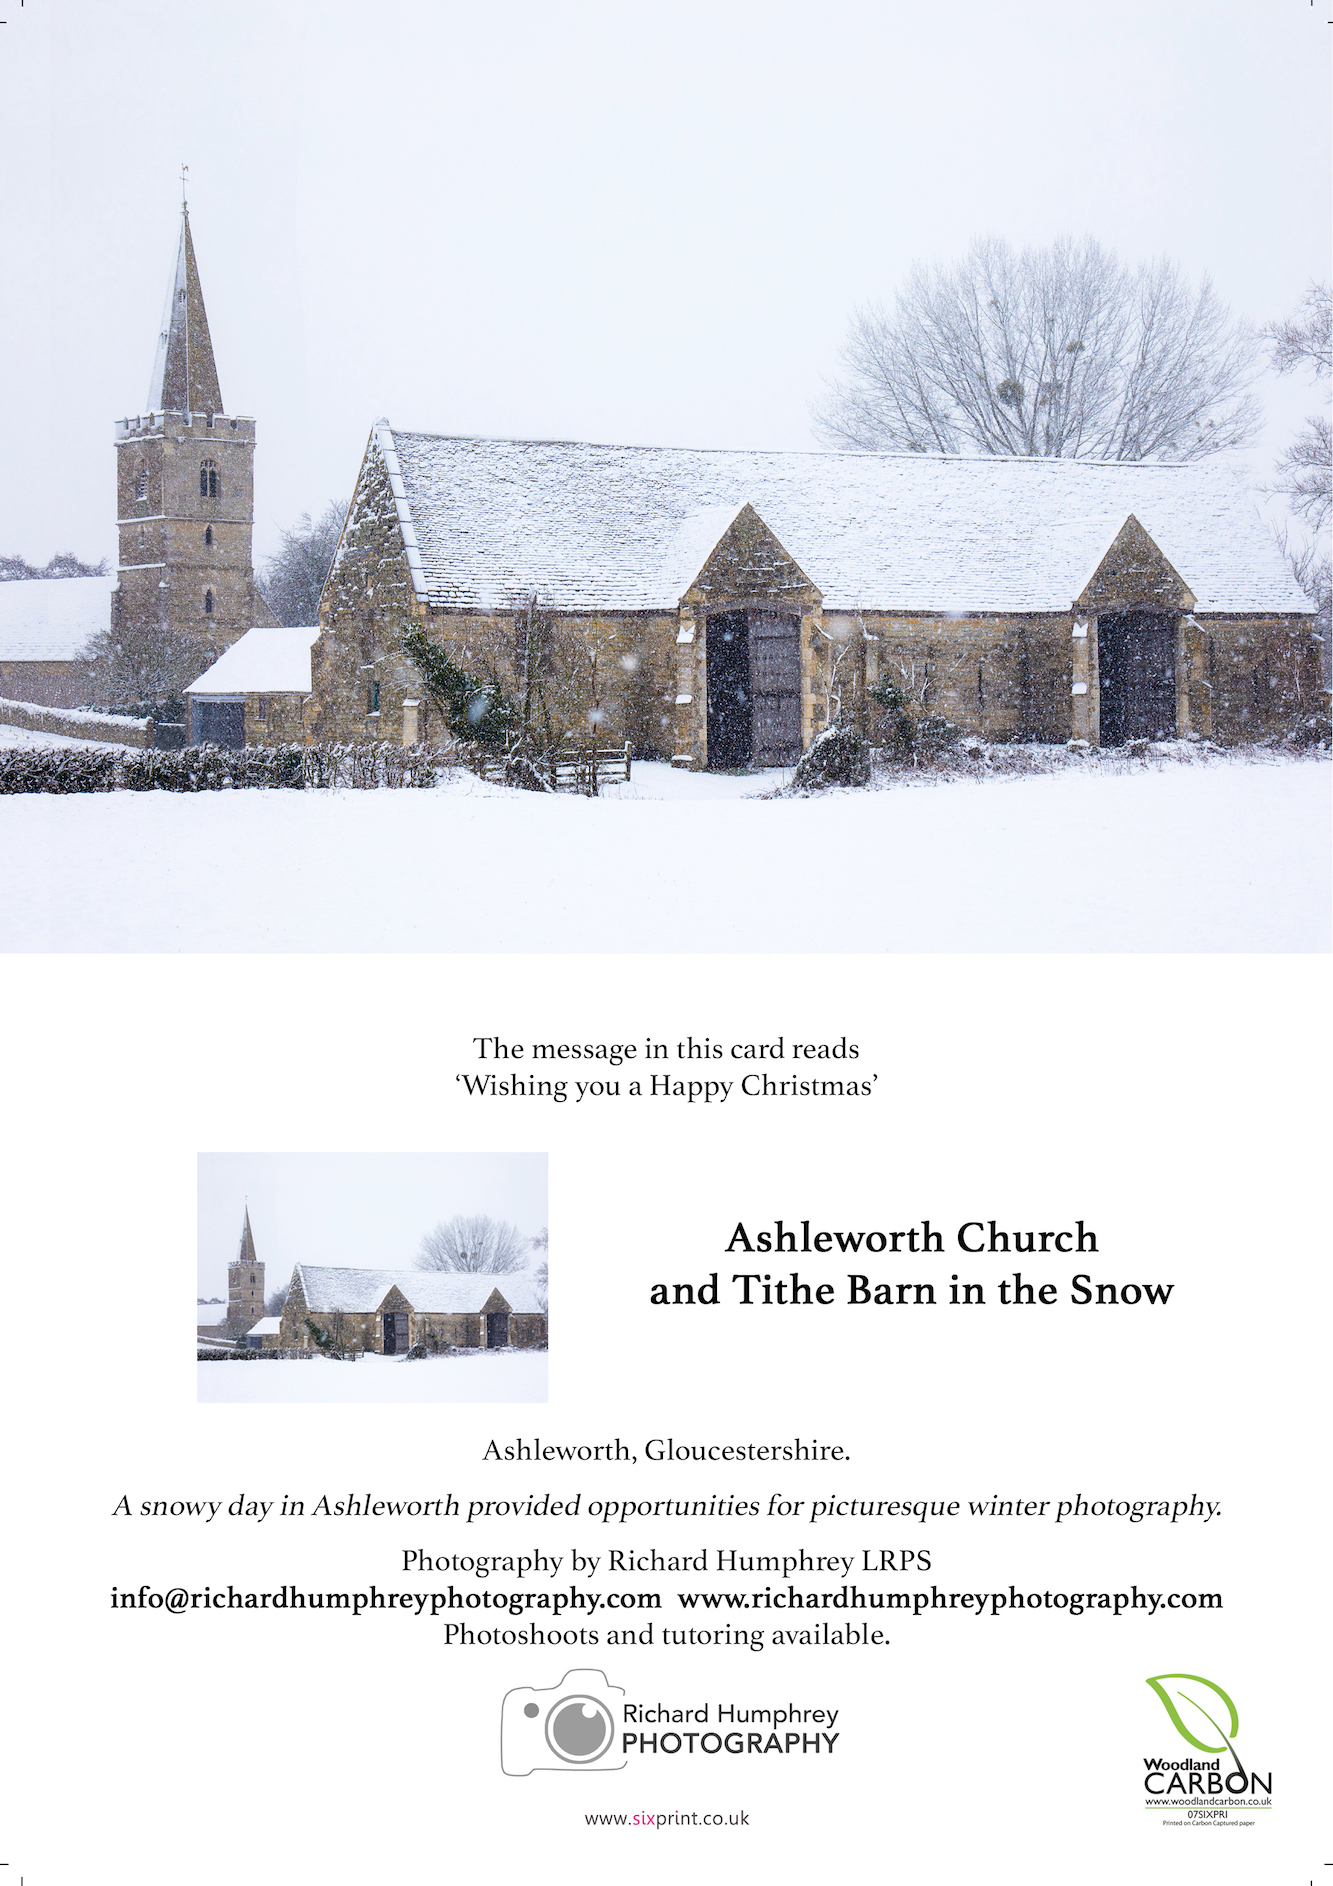 Church and Tithe Barn in Snow